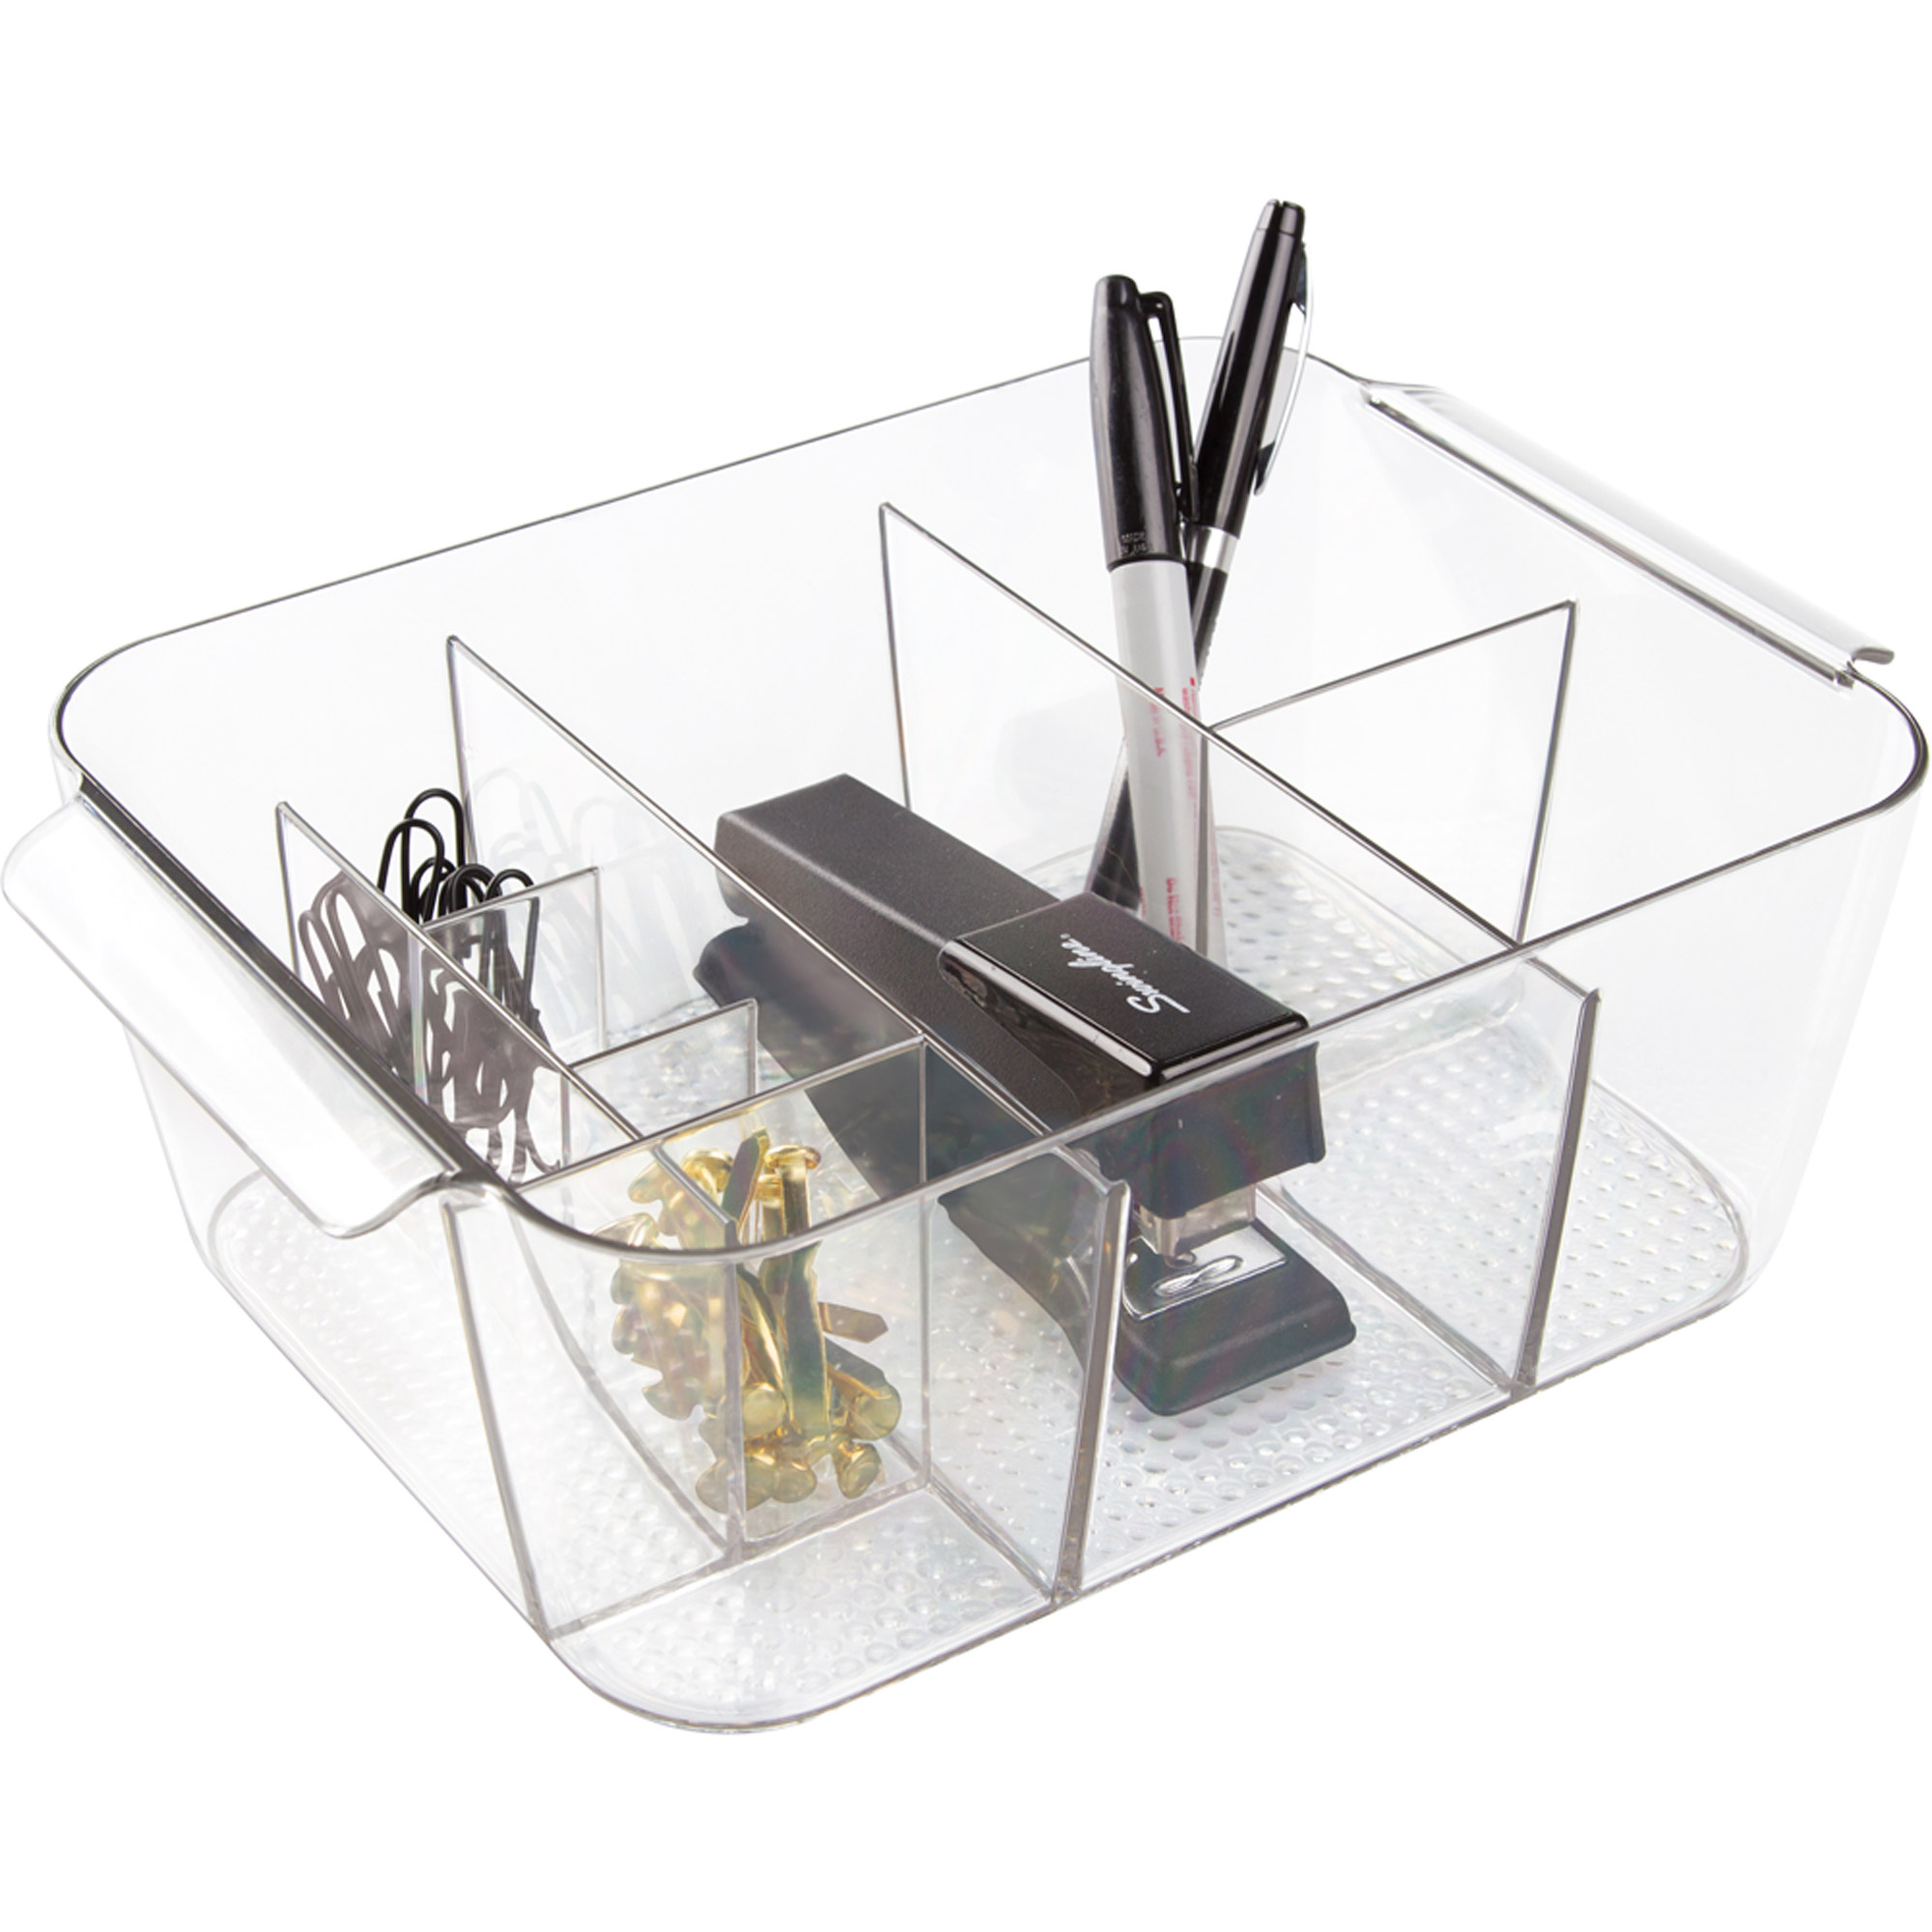 Watch - Makeup Acrylic organizer walmart video